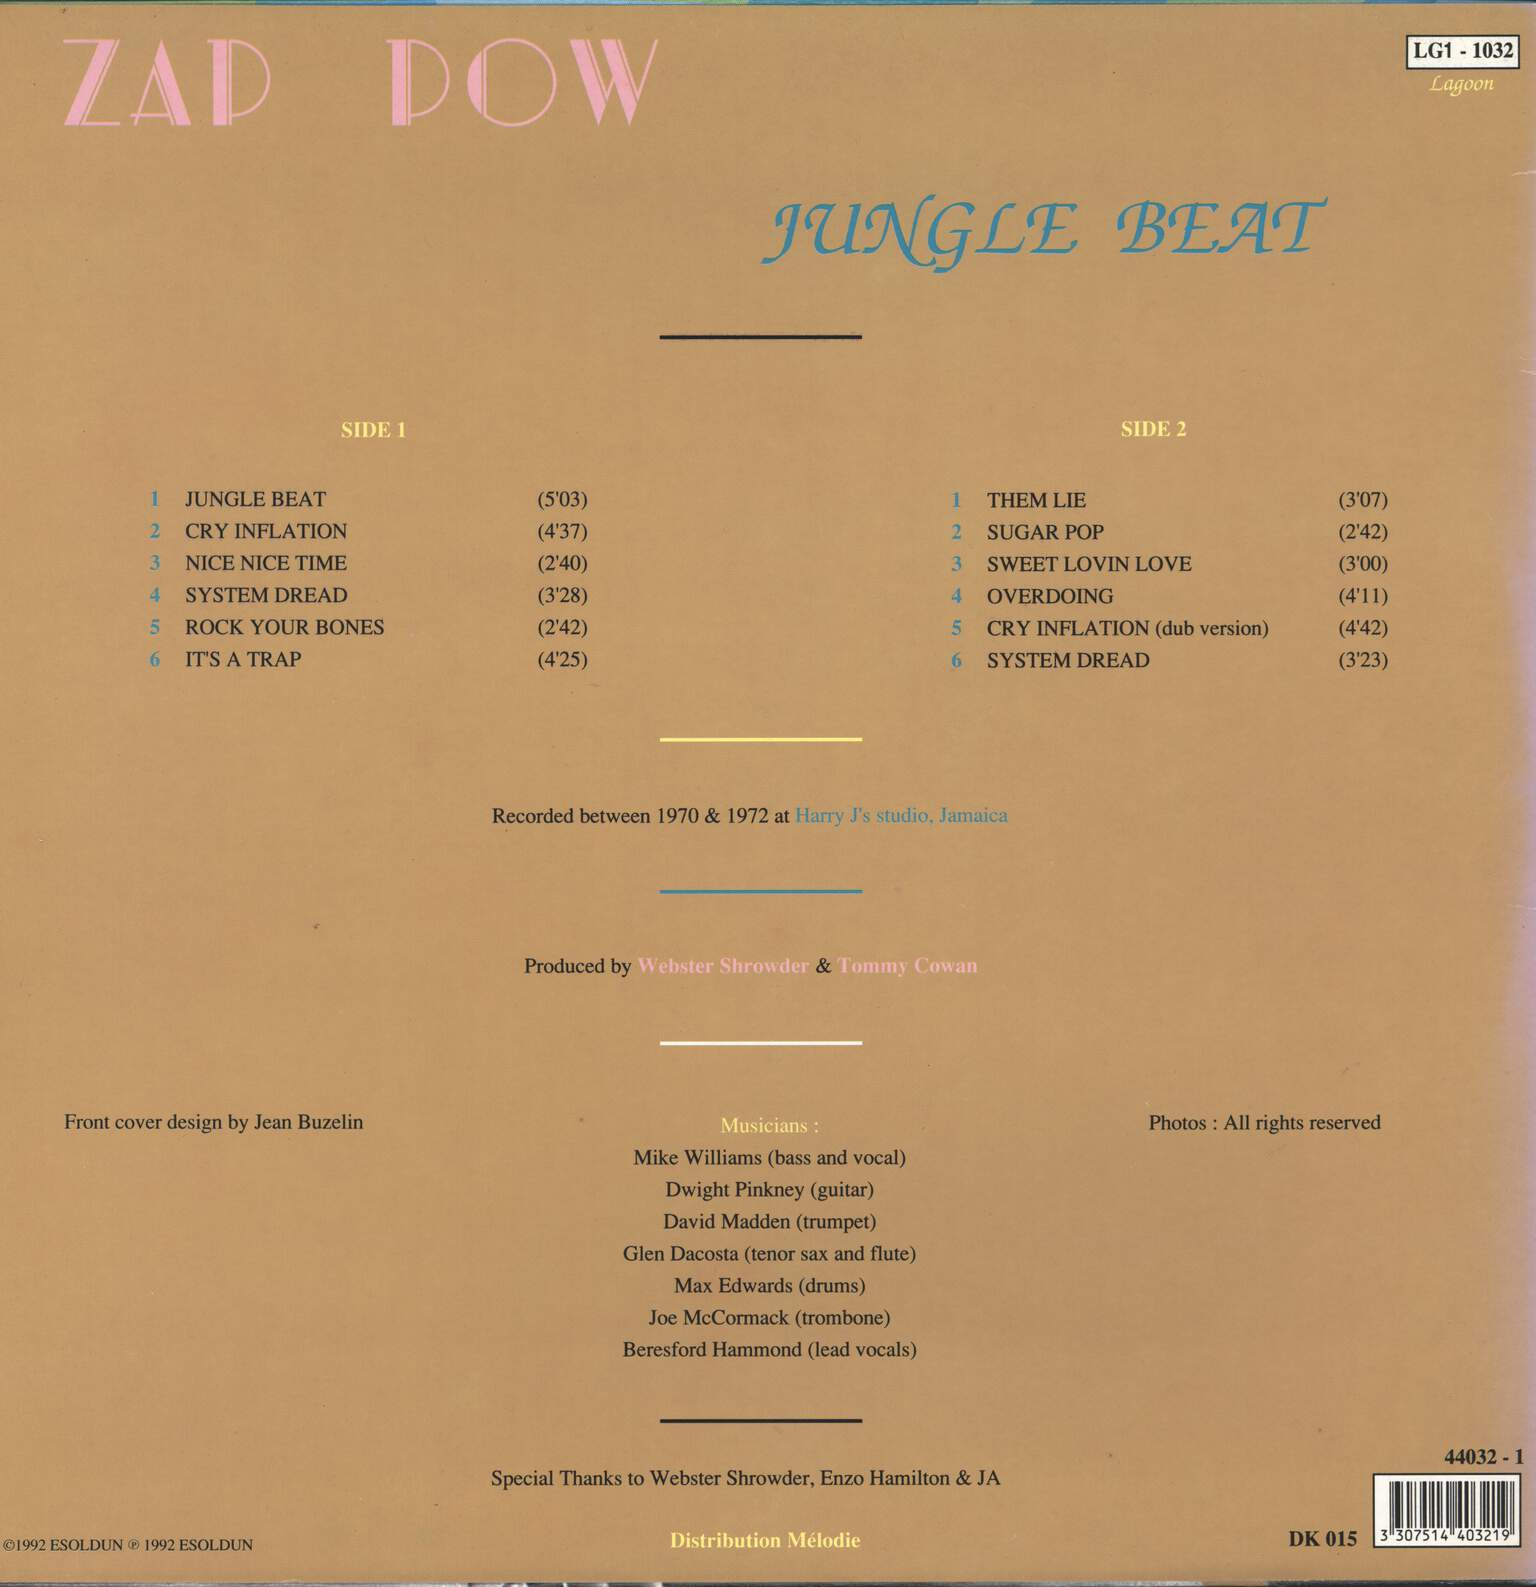 Zap Pow: Jungle Beat, LP (Vinyl)